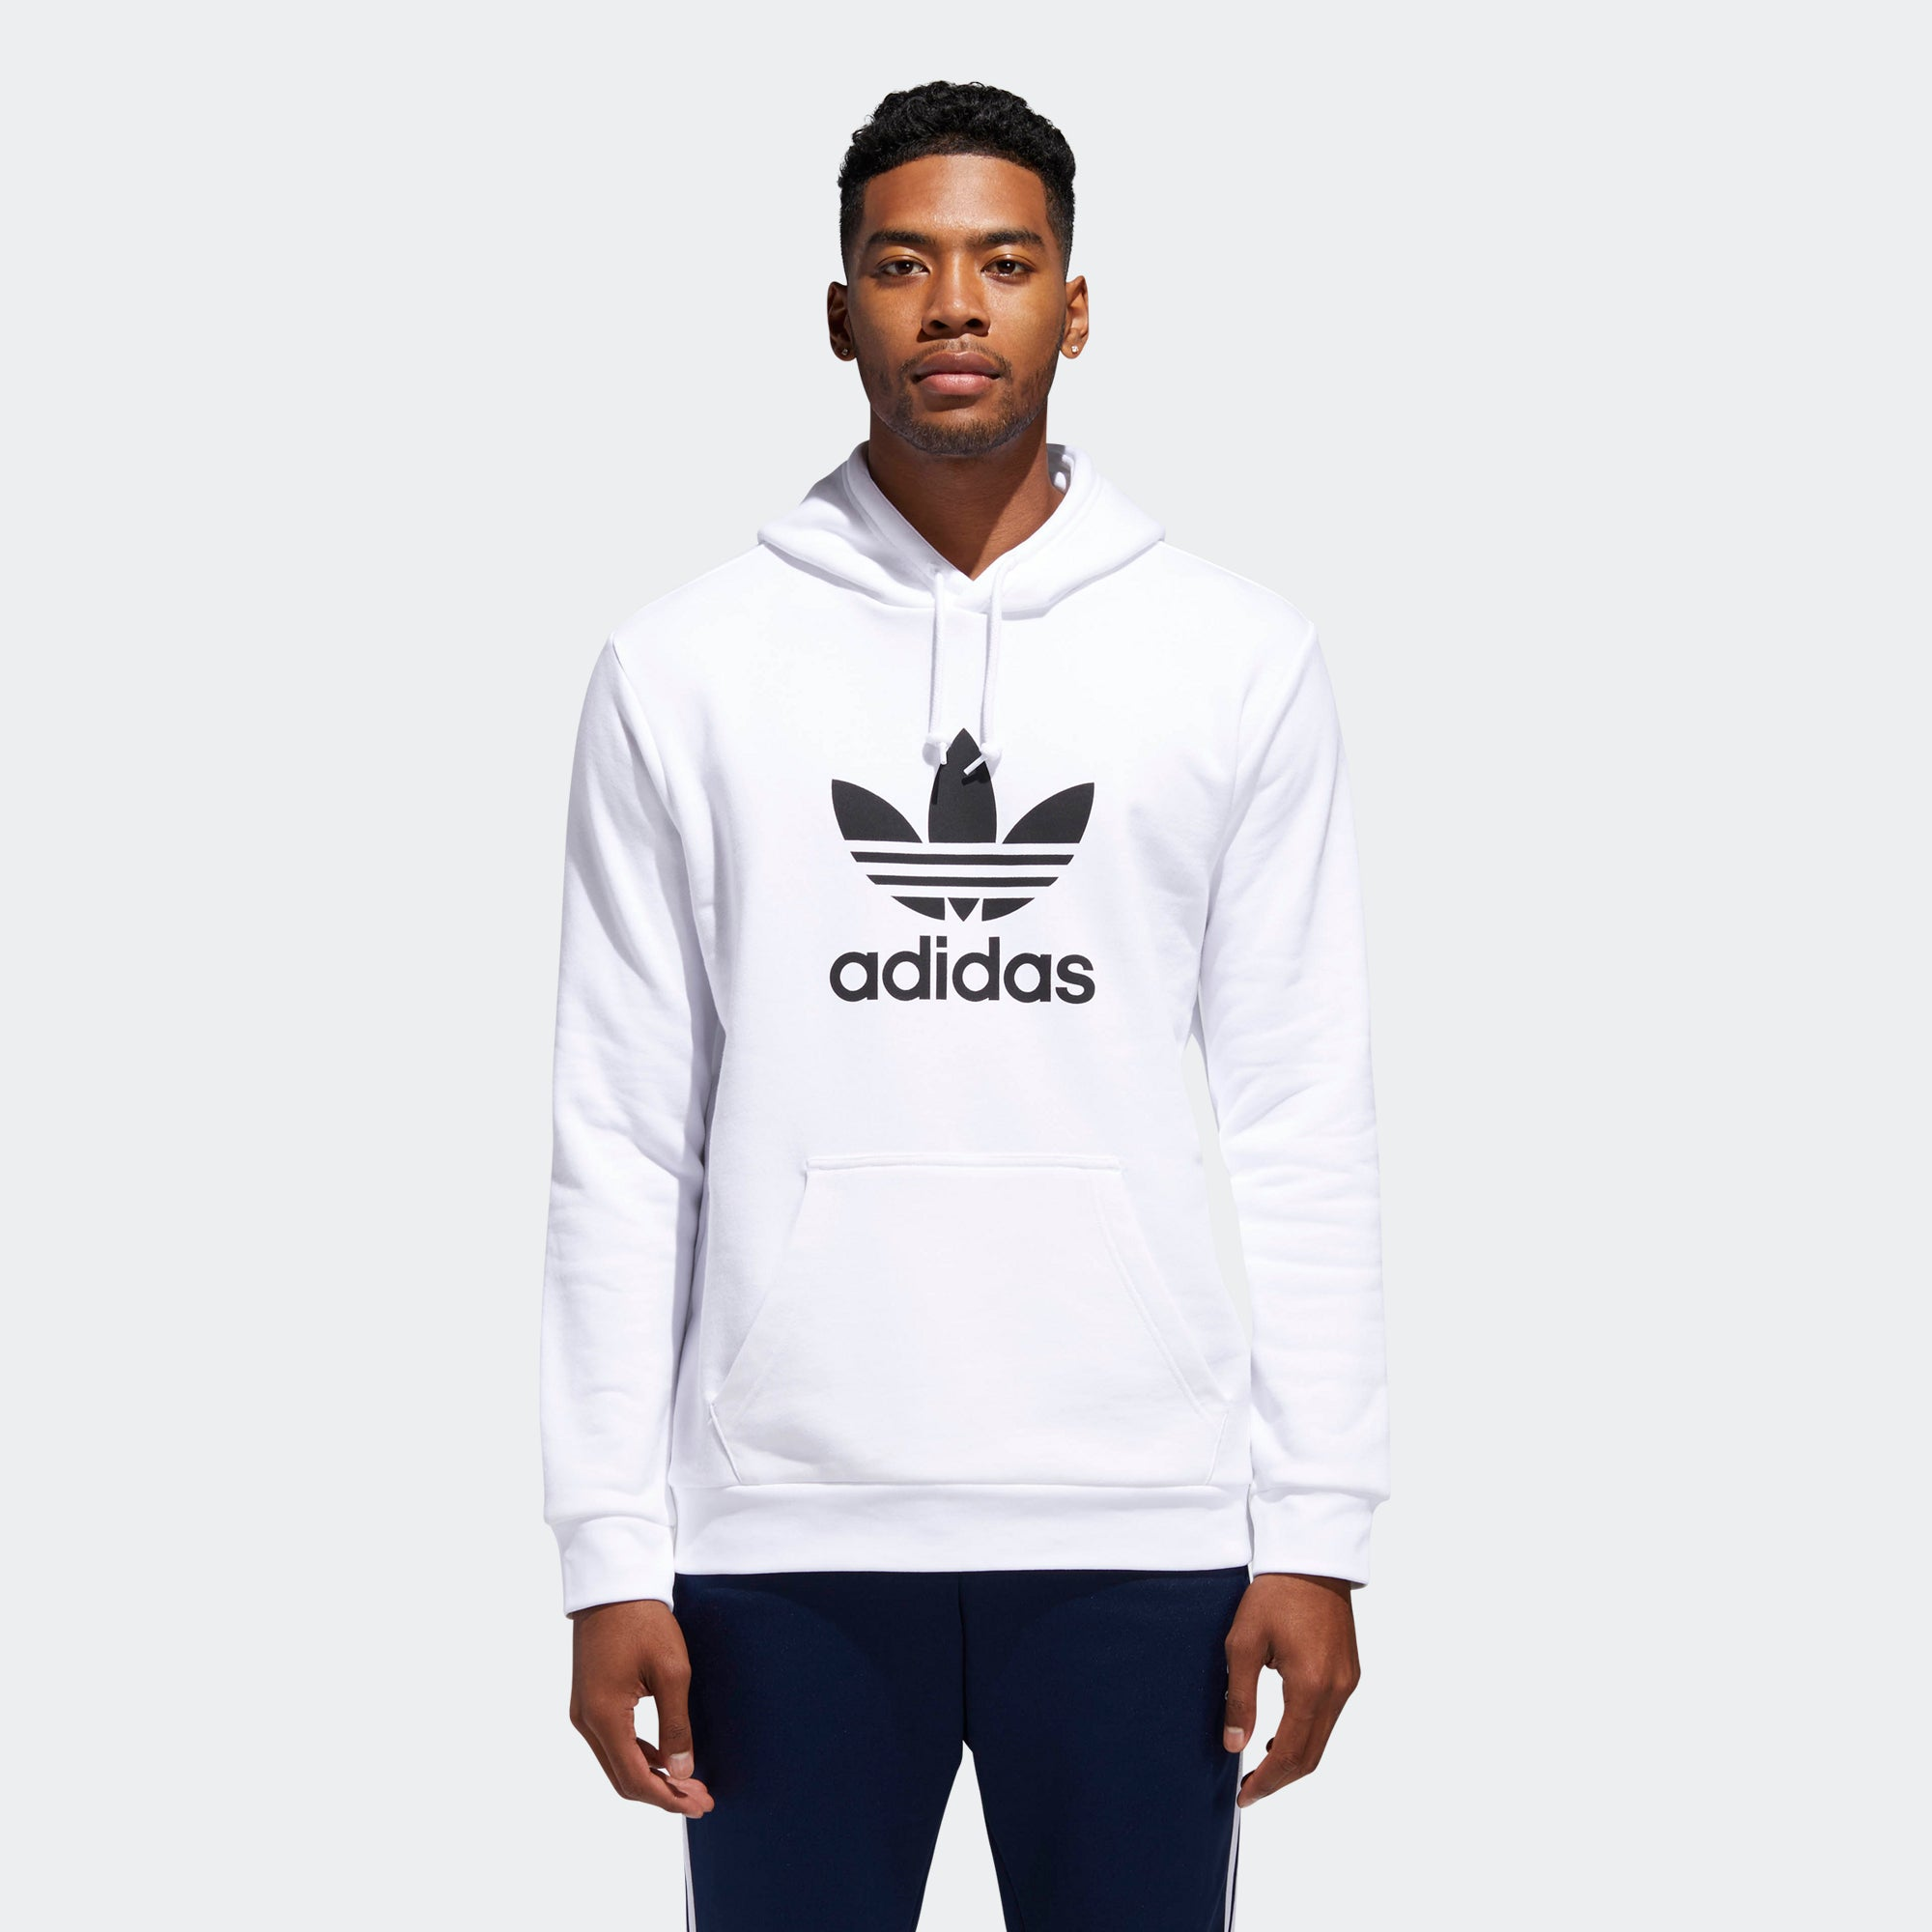 af715ea312a2 Men s adidas Originals Trefoil Warm-Up Hoodie White. 1